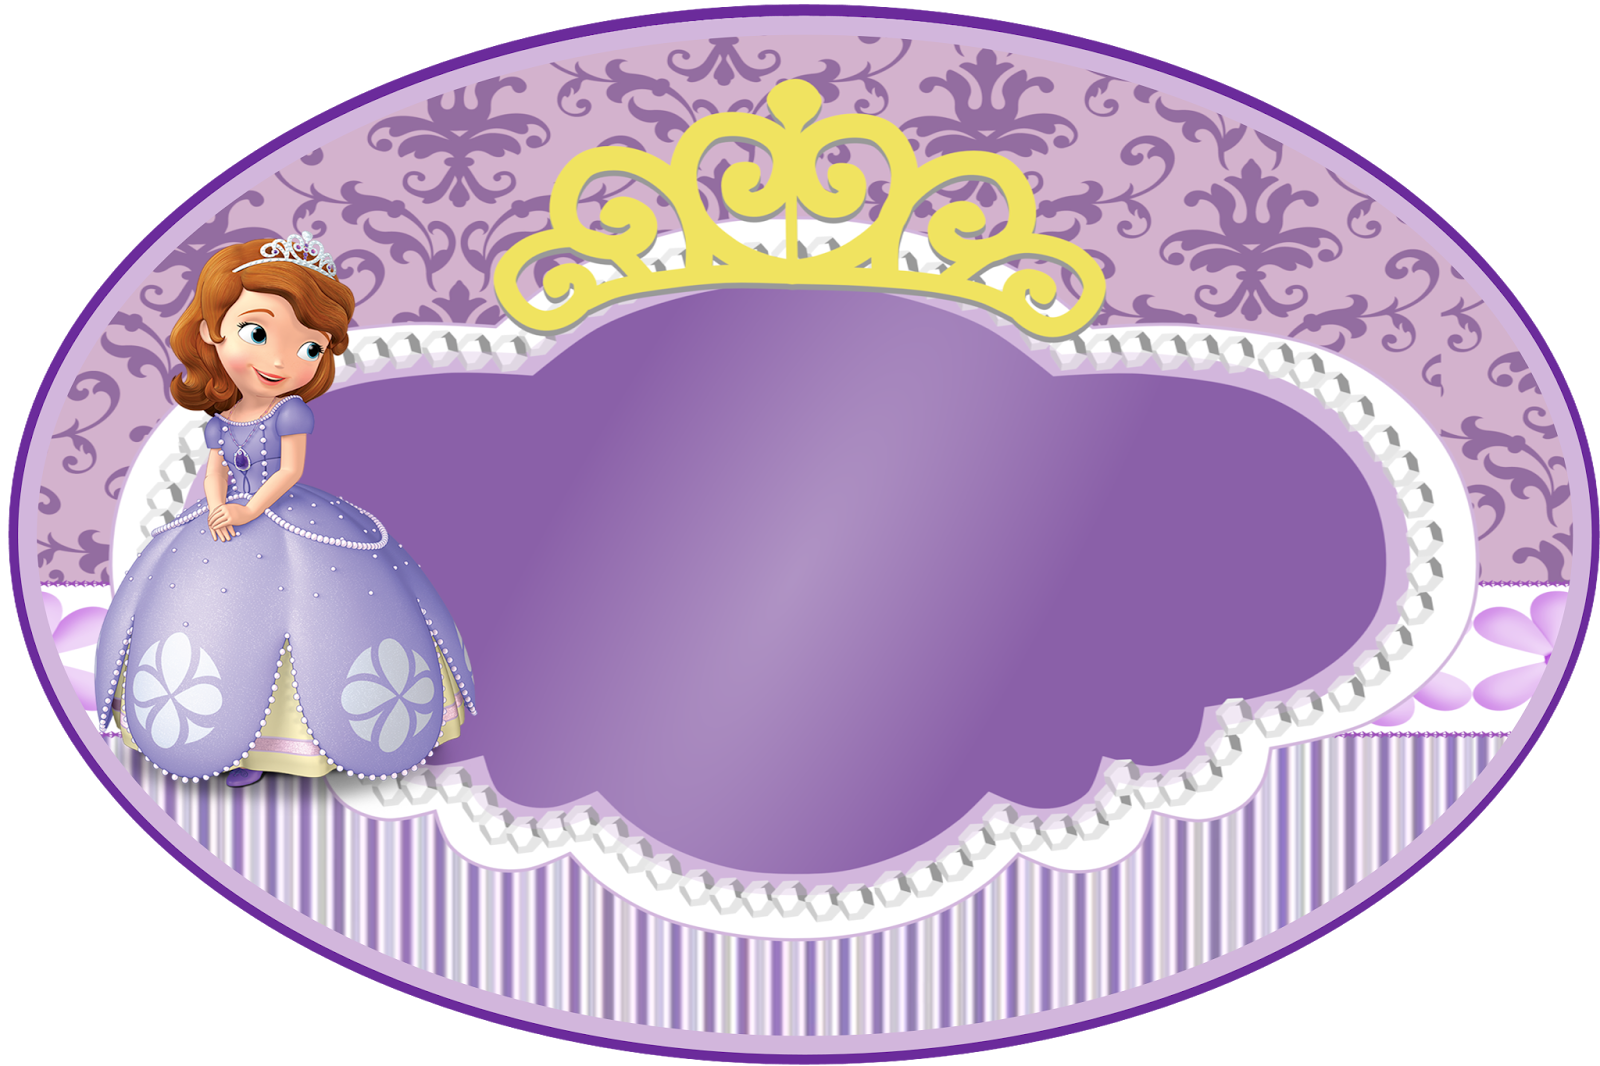 Sofia The First Clipart at GetDrawings.com | Free for ...